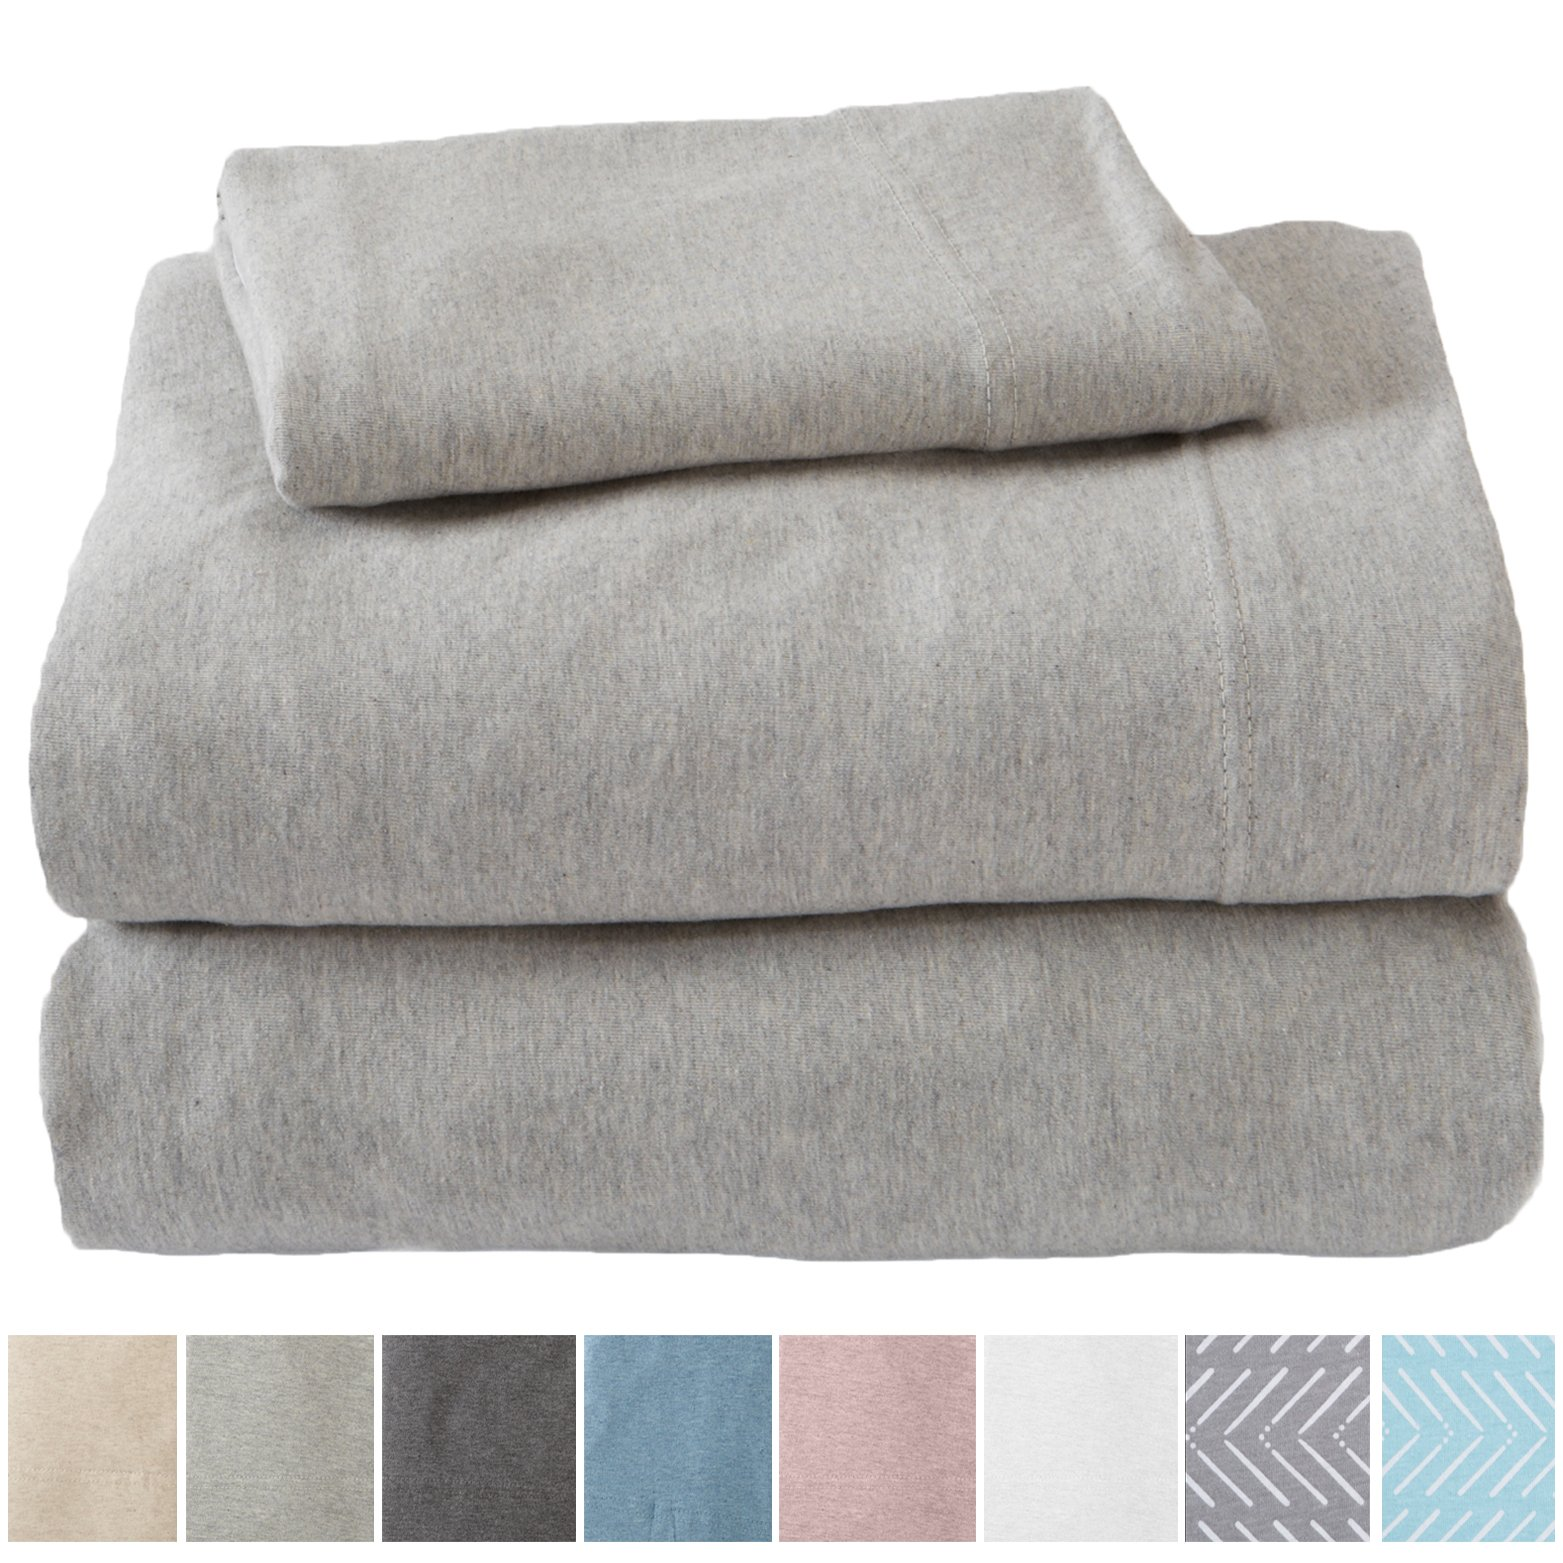 Great Bay Home Extra Soft Heather Jersey Knit (T-Shirt) Cotton Sheet Set. Soft, Comfortable, Cozy All-Season Bed Sheets. Carmen Collection By Brand. (Twin, Light Grey)